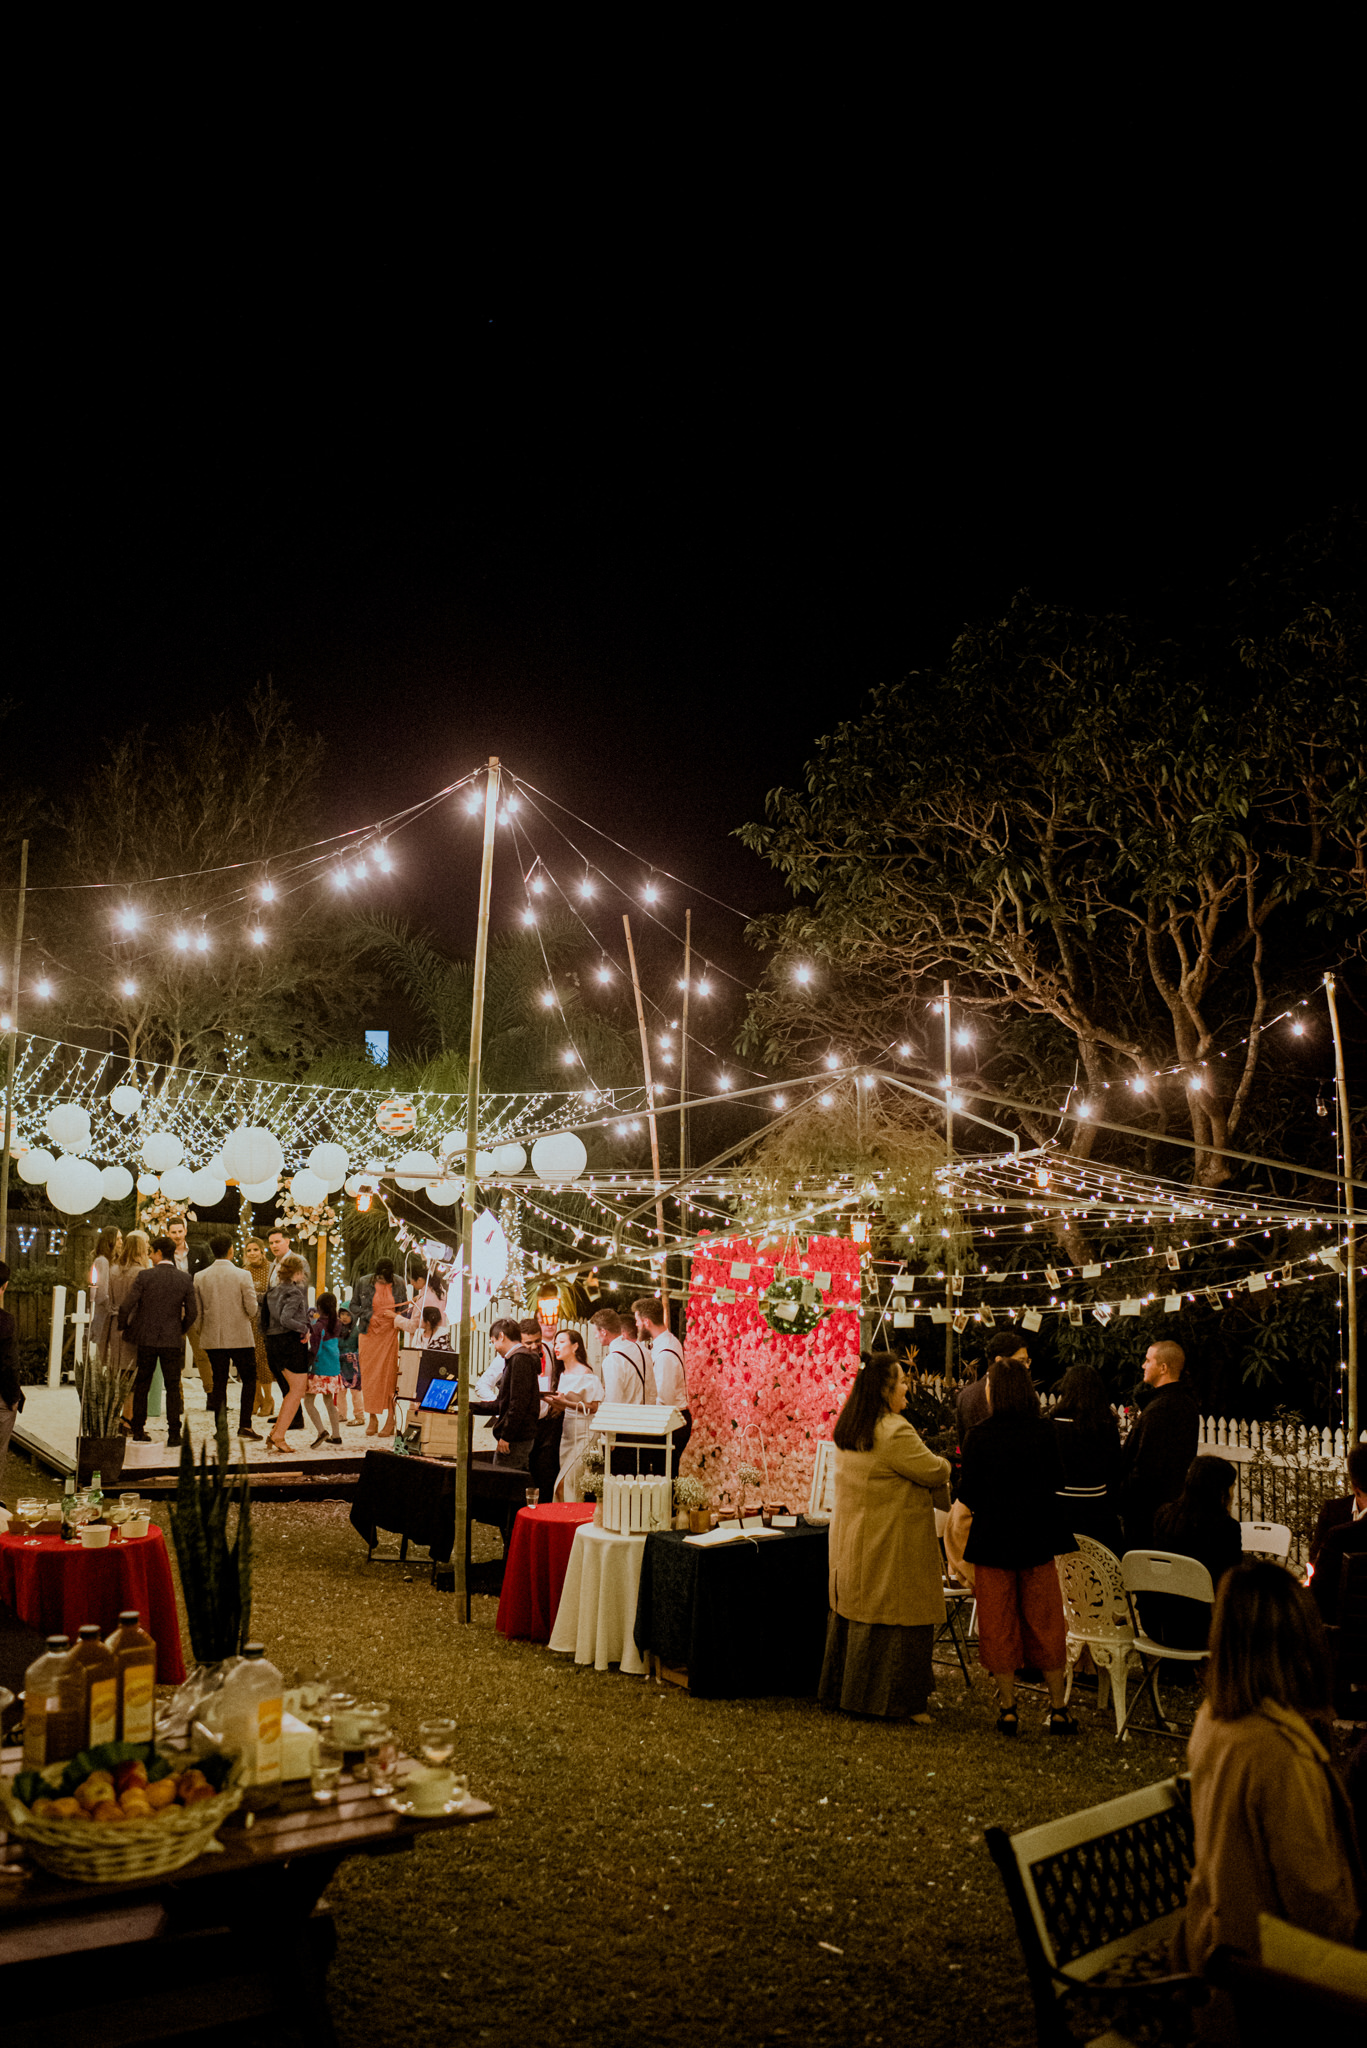 Guests dance and celebrate at a nighttime backyard wedding